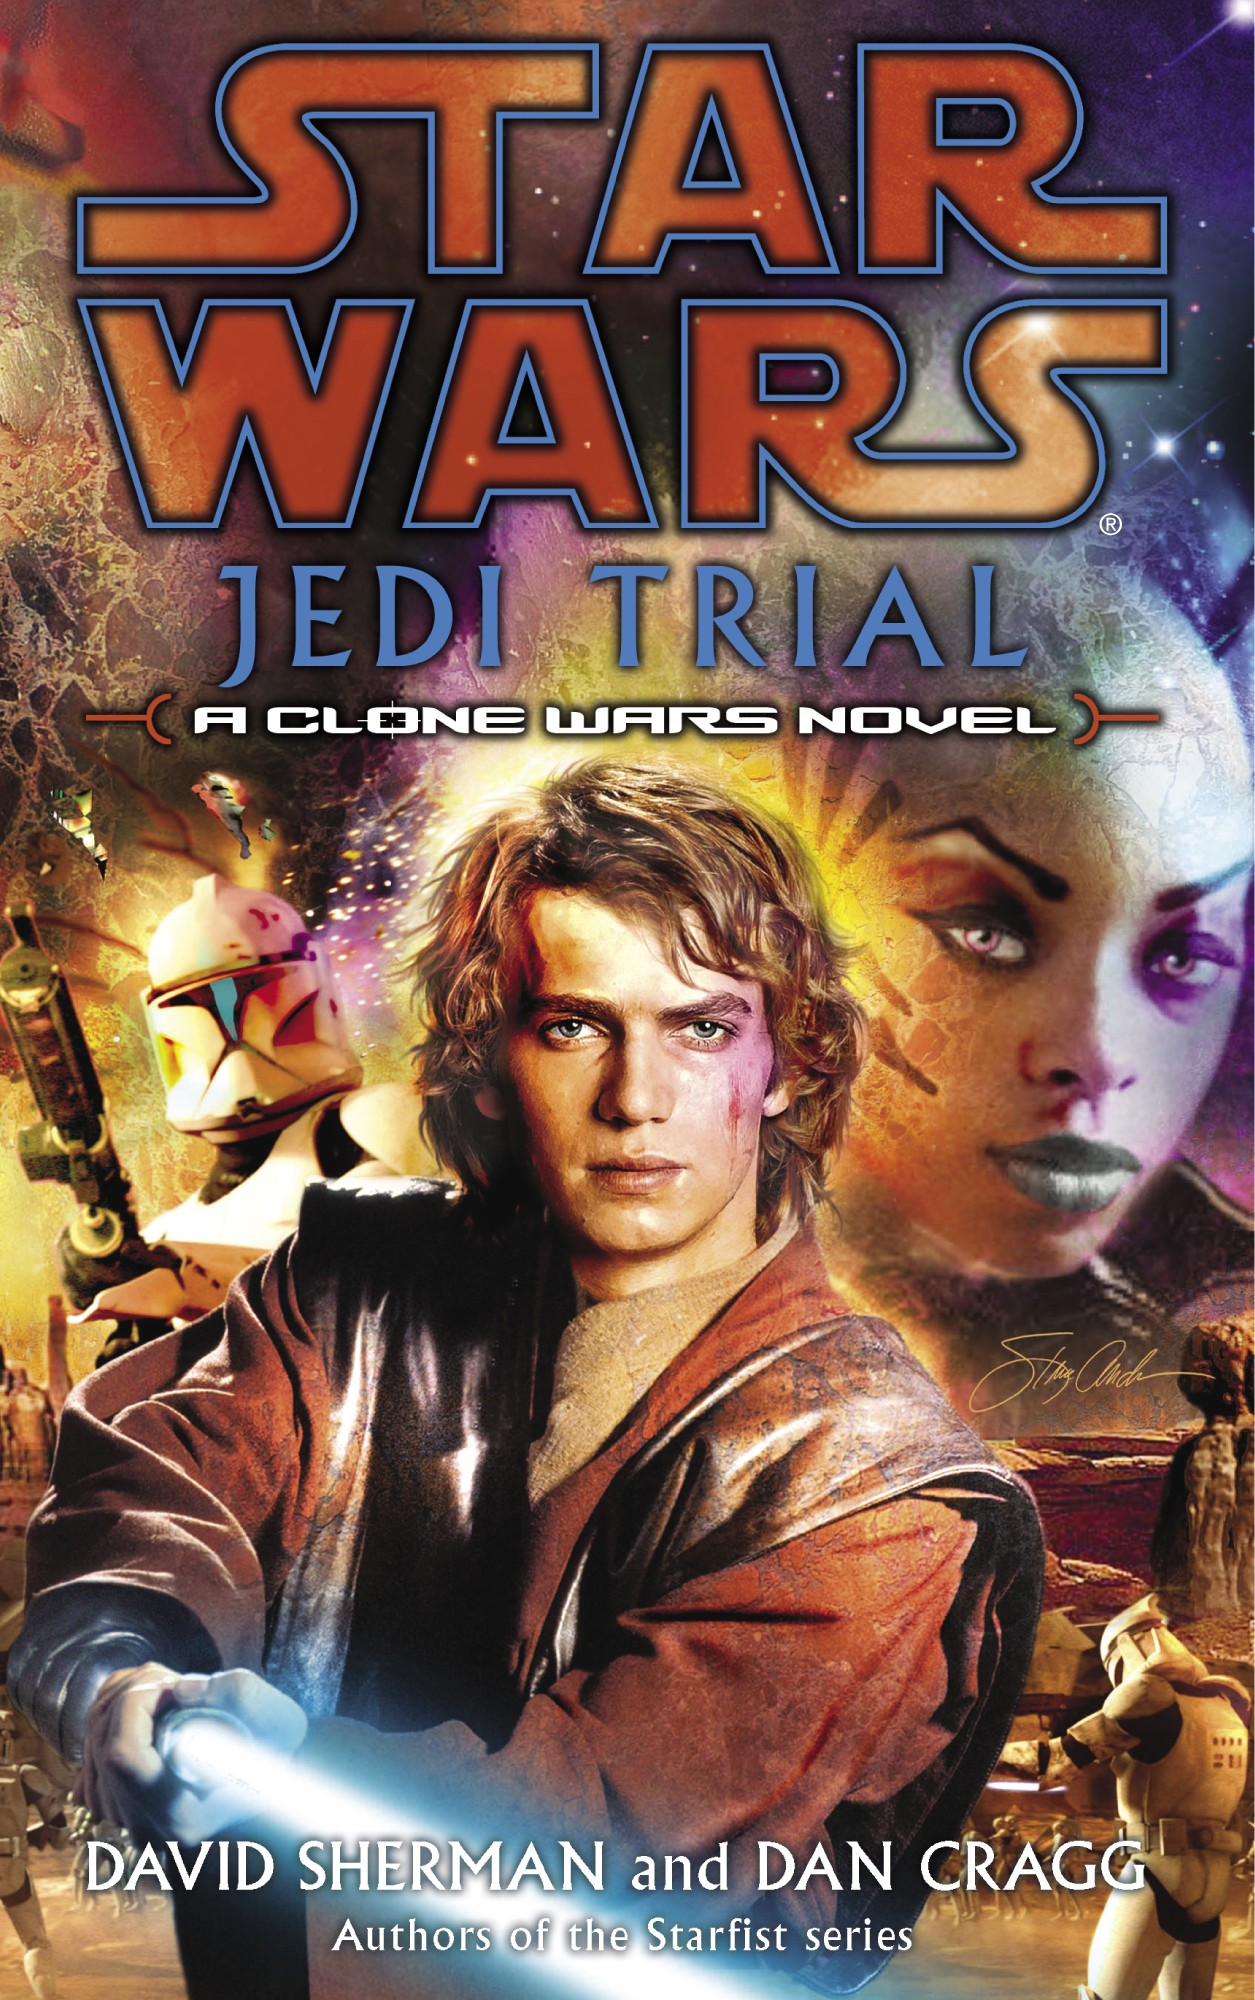 Star Wars: Jedi Trial